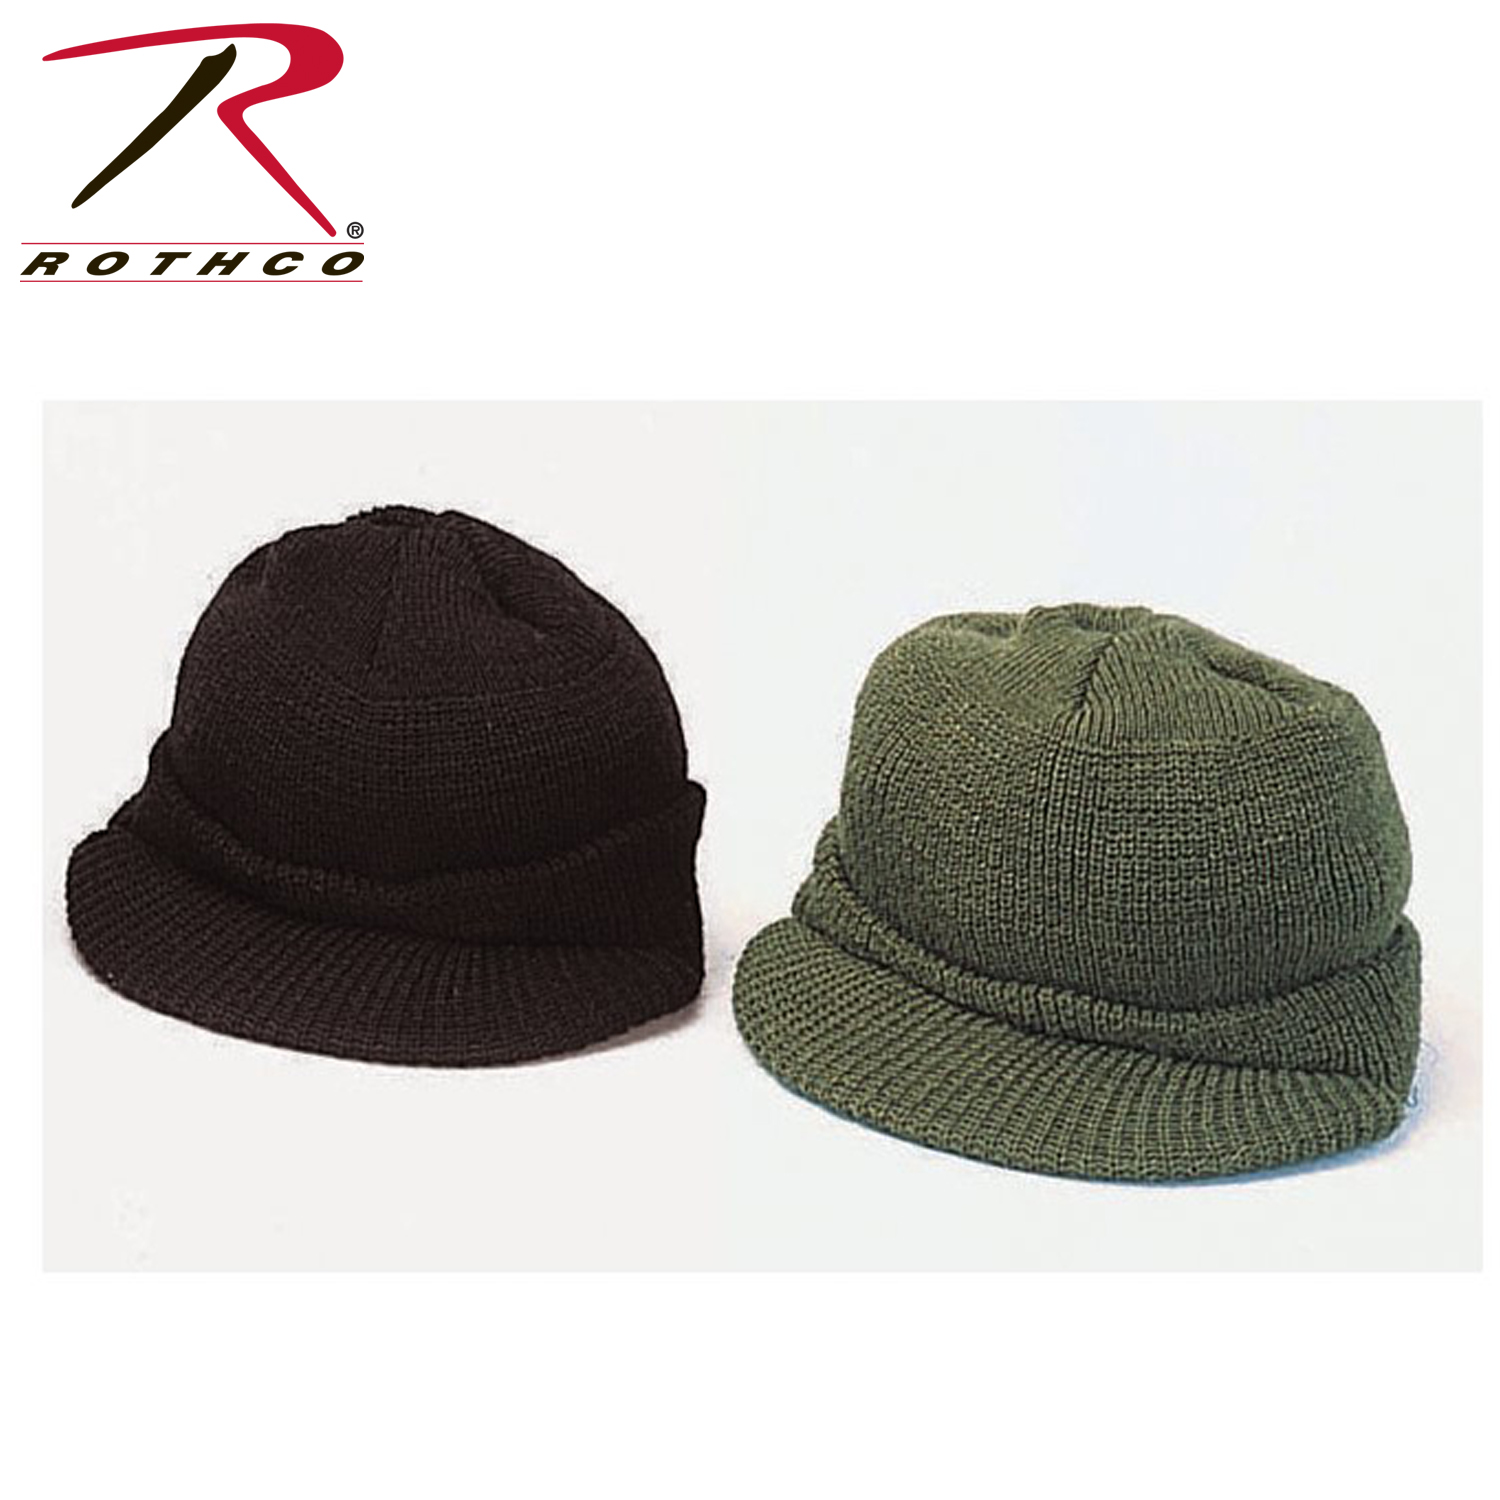 Jeep Cap-100% Wool